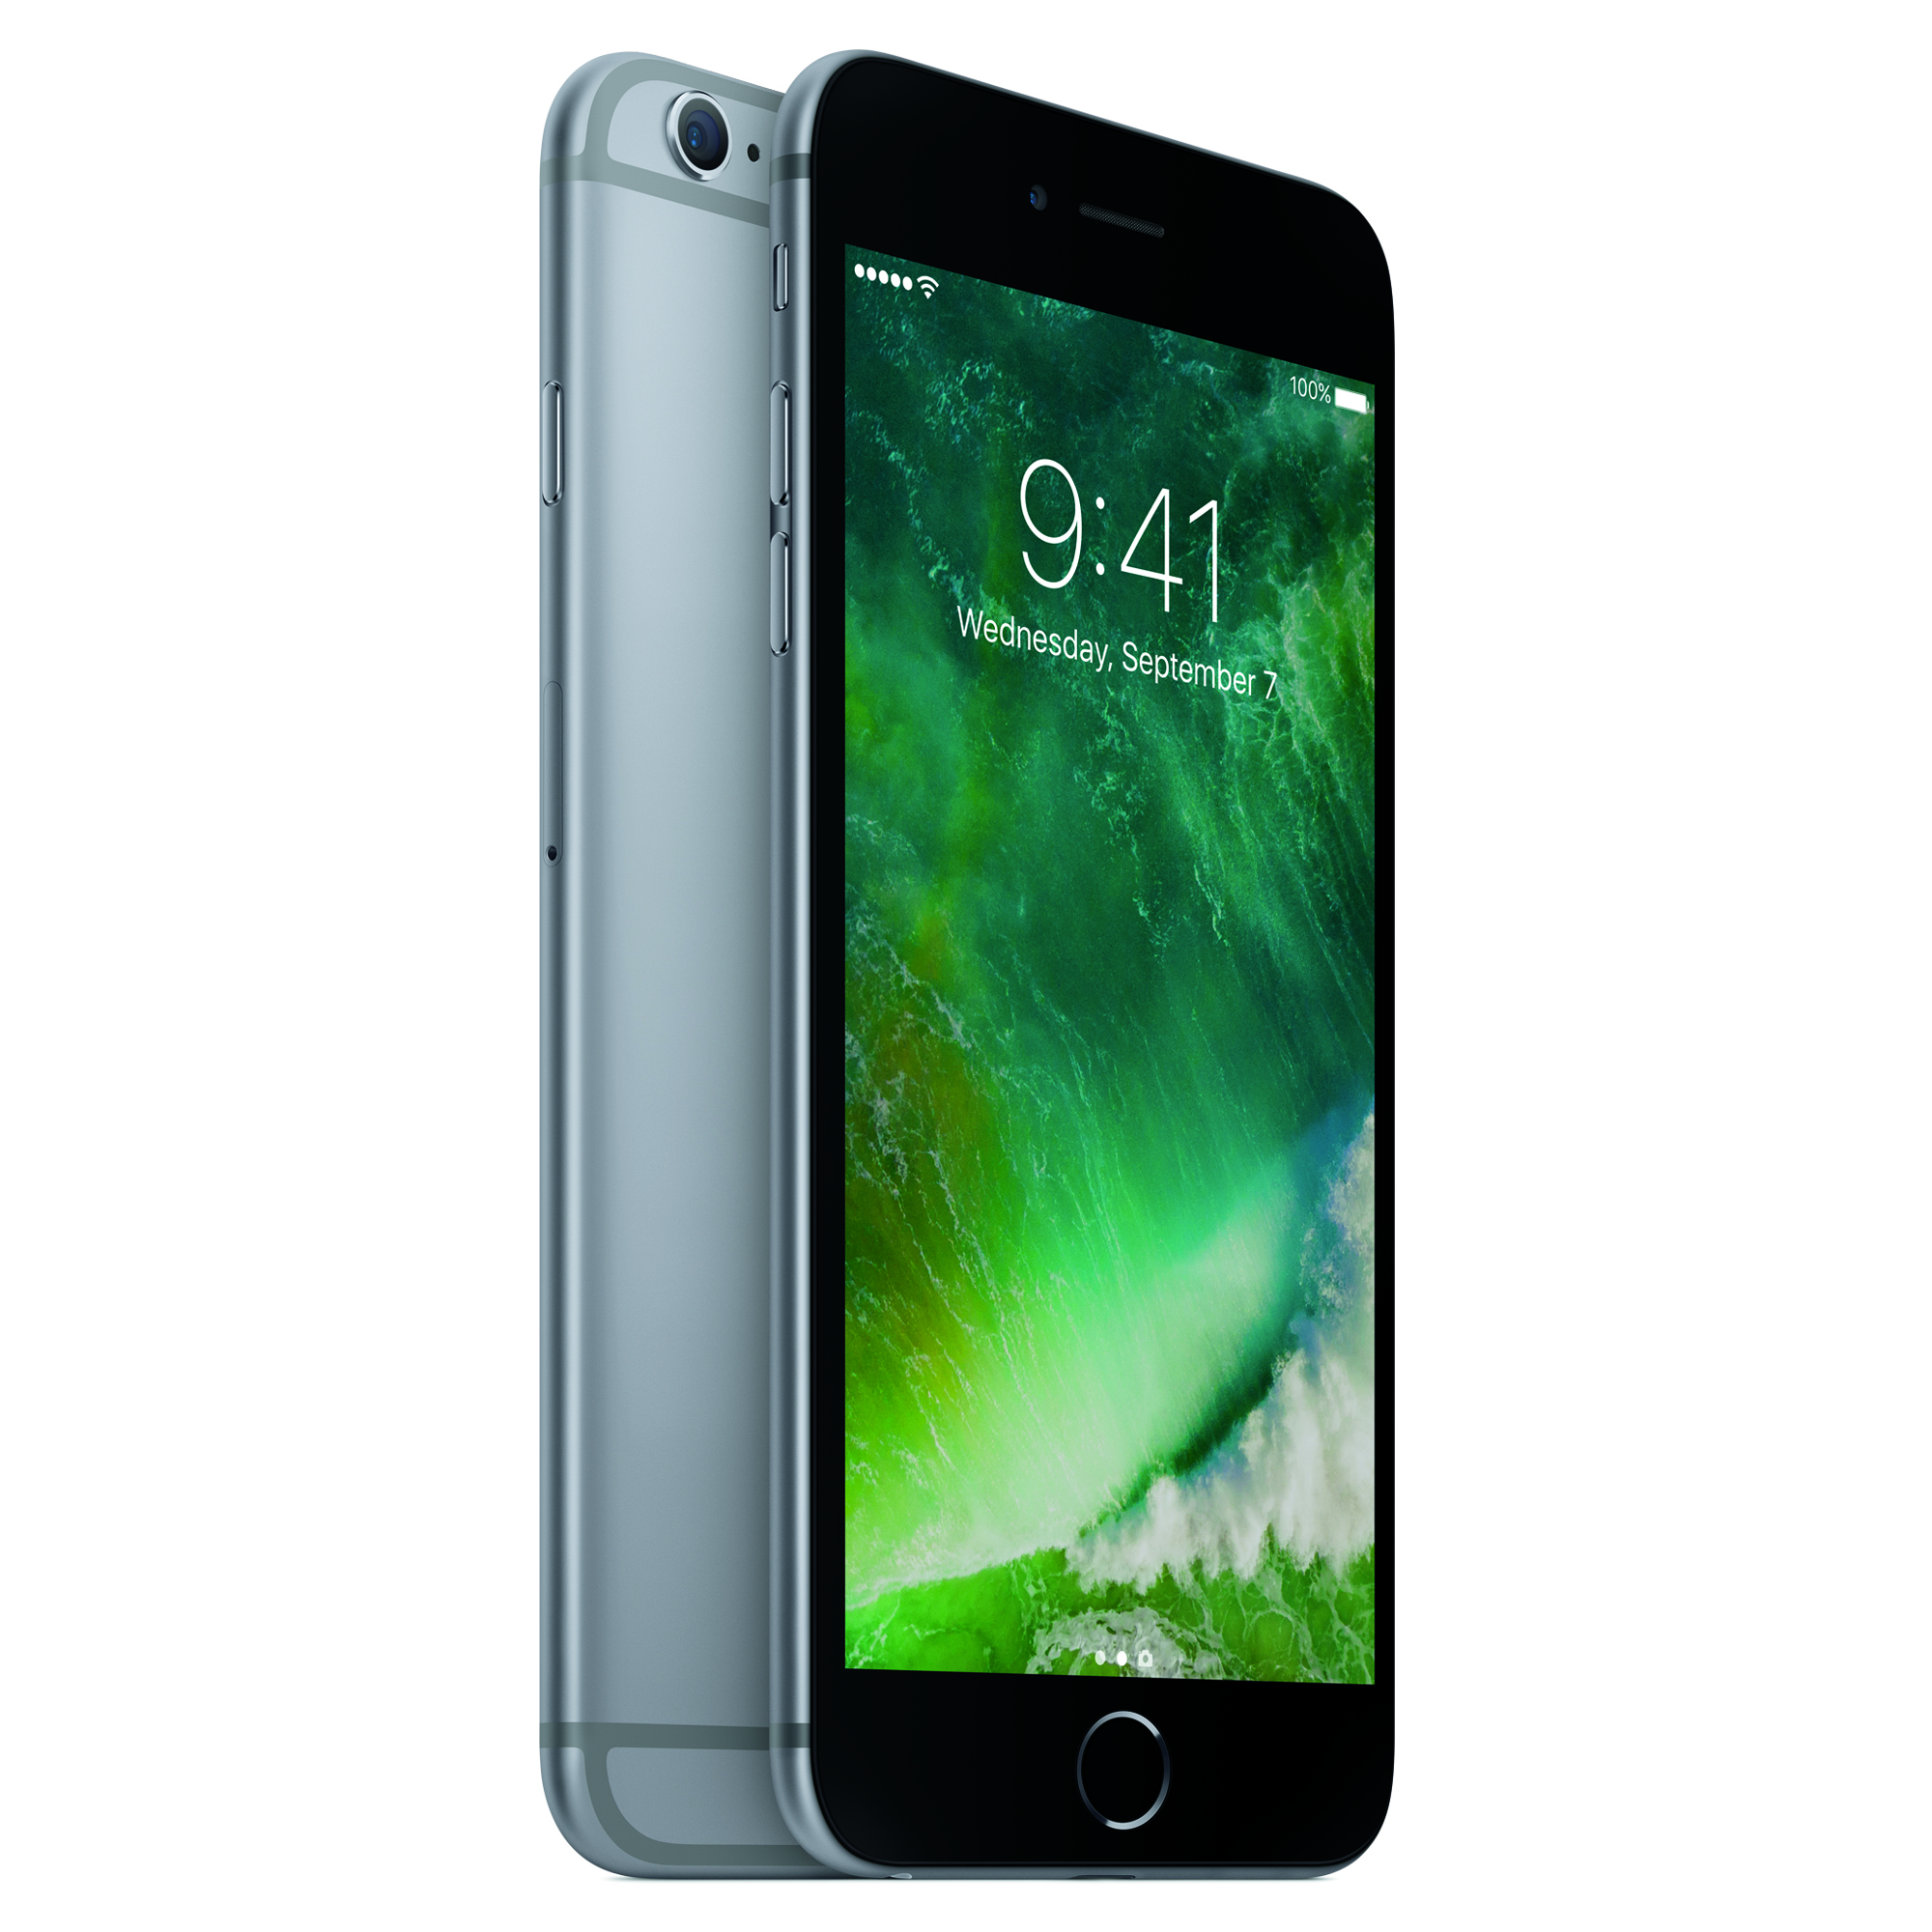 Total Wireless Apple iPhone 6s Plus 32GB Prepaid Smartphone, Space Gray